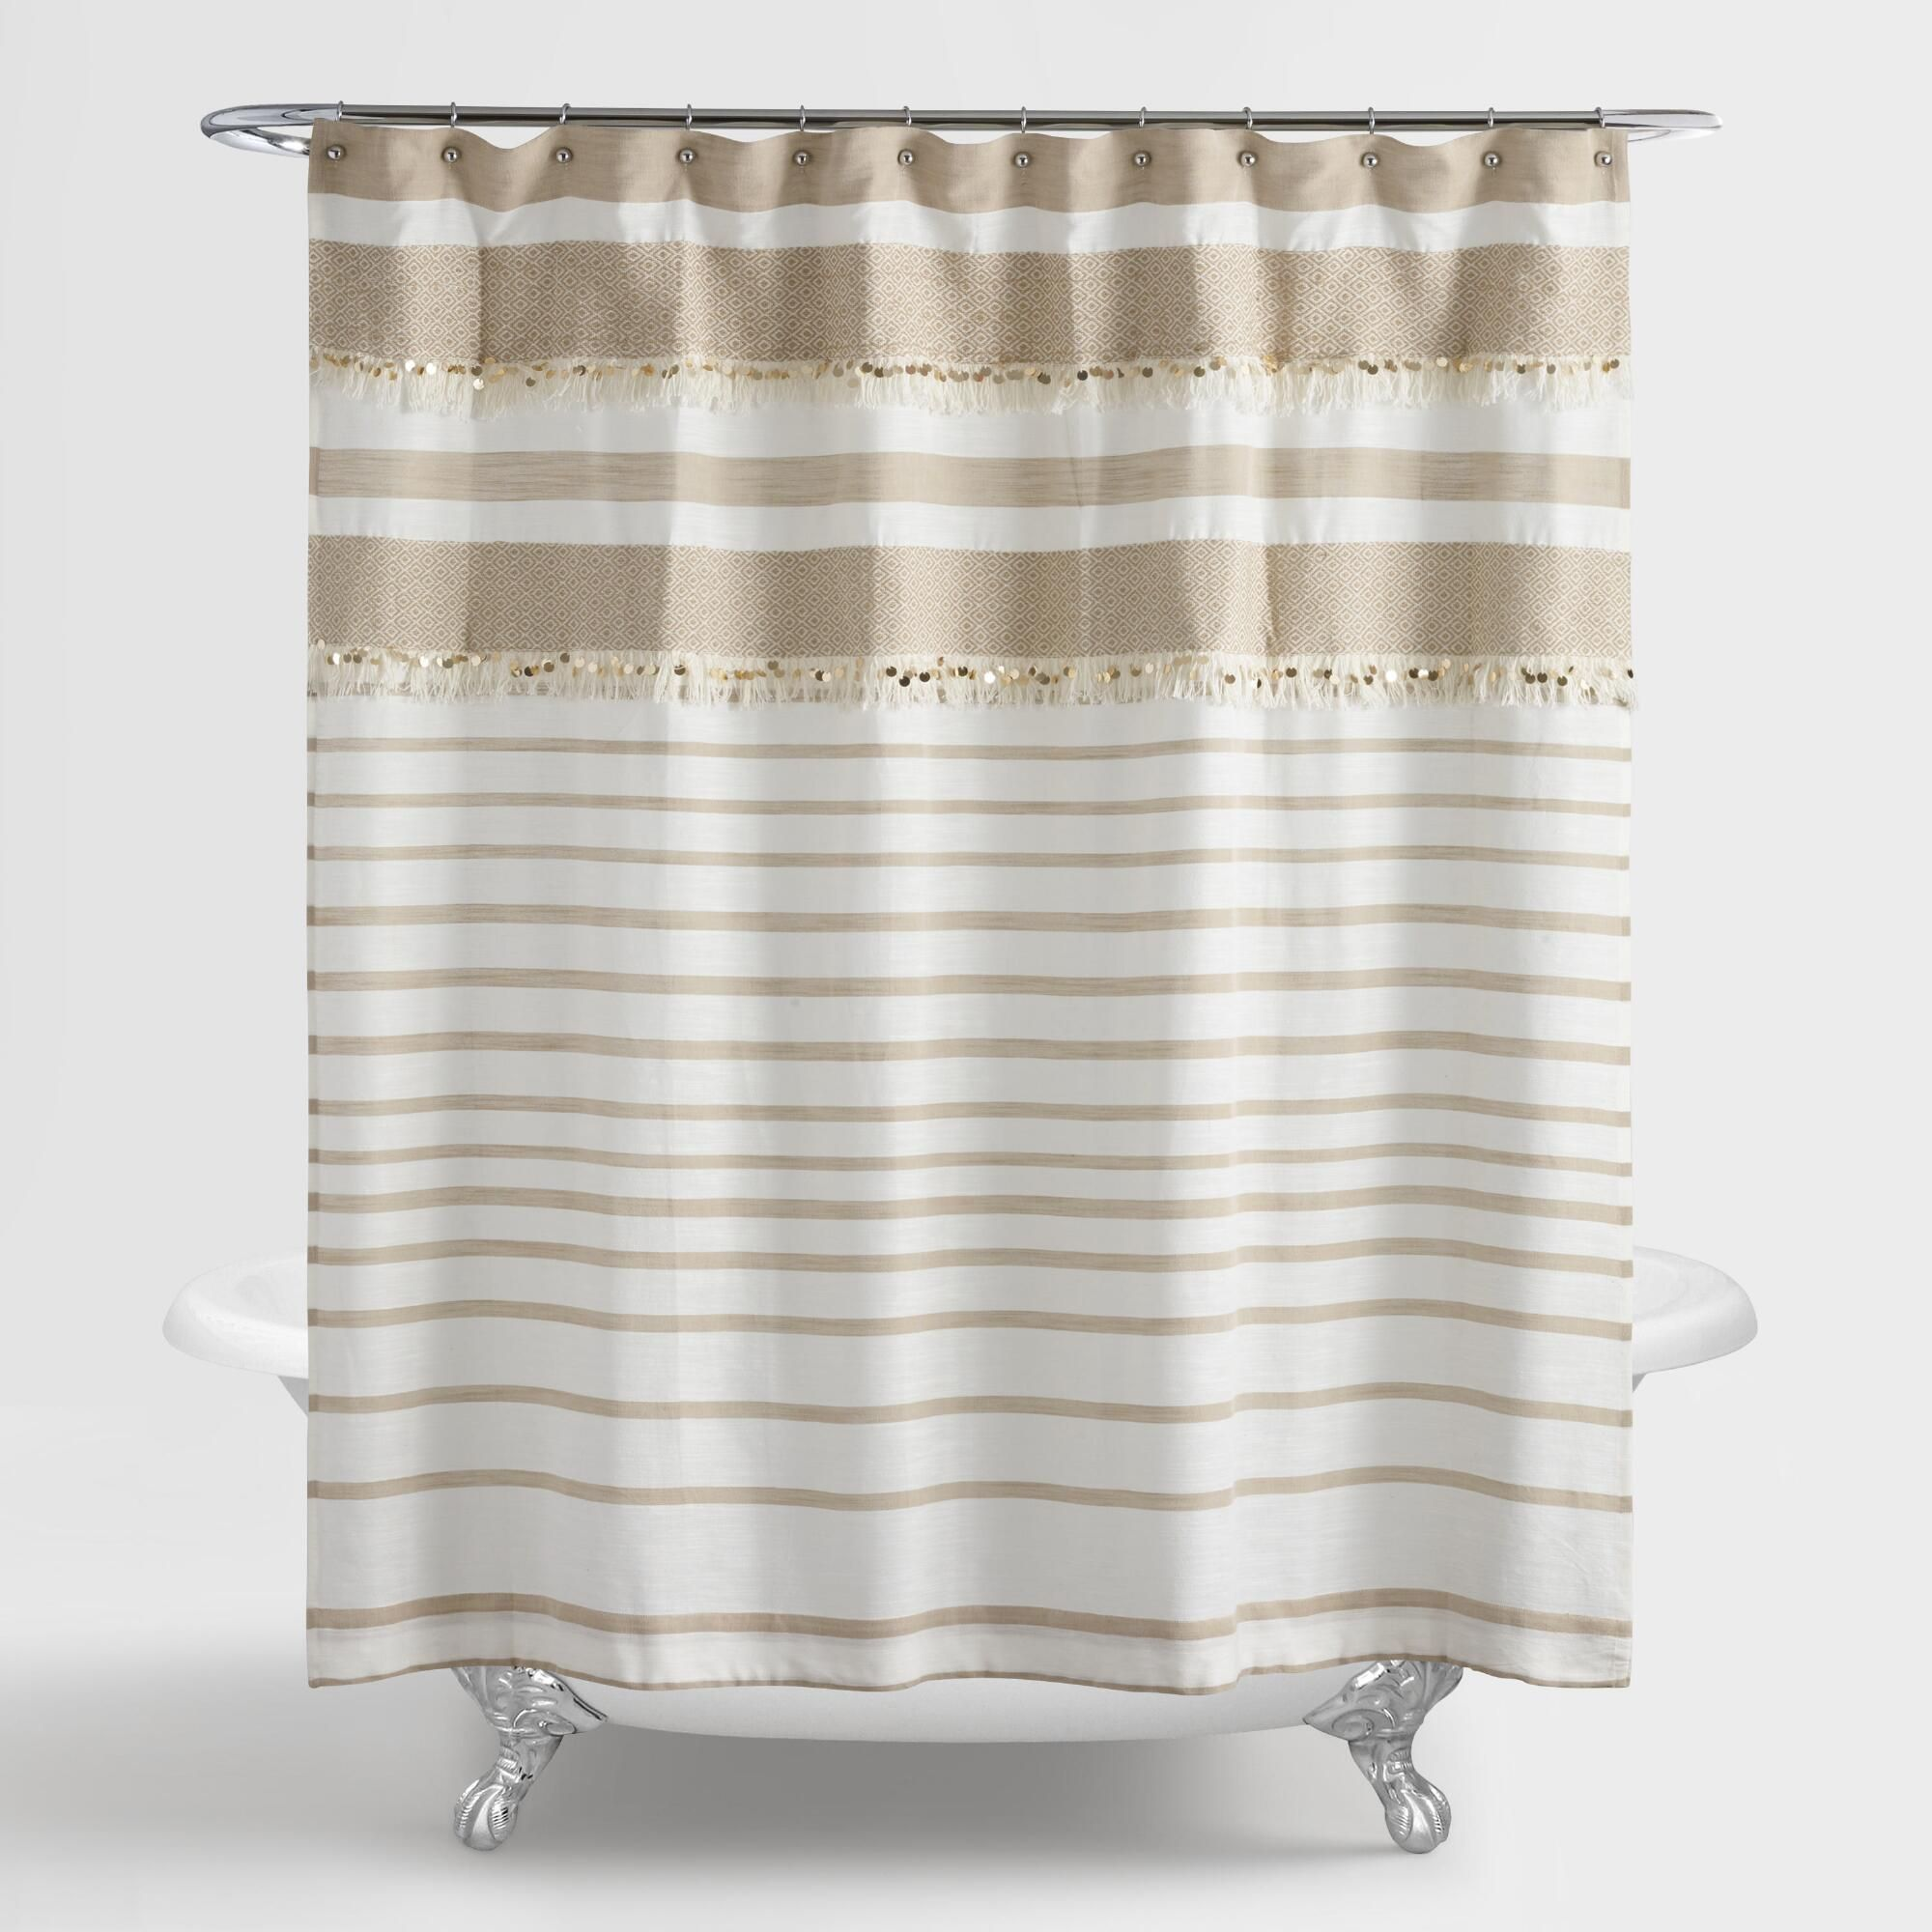 Tan And White Wedding Blanket Shower Curtain Brown White Cotton